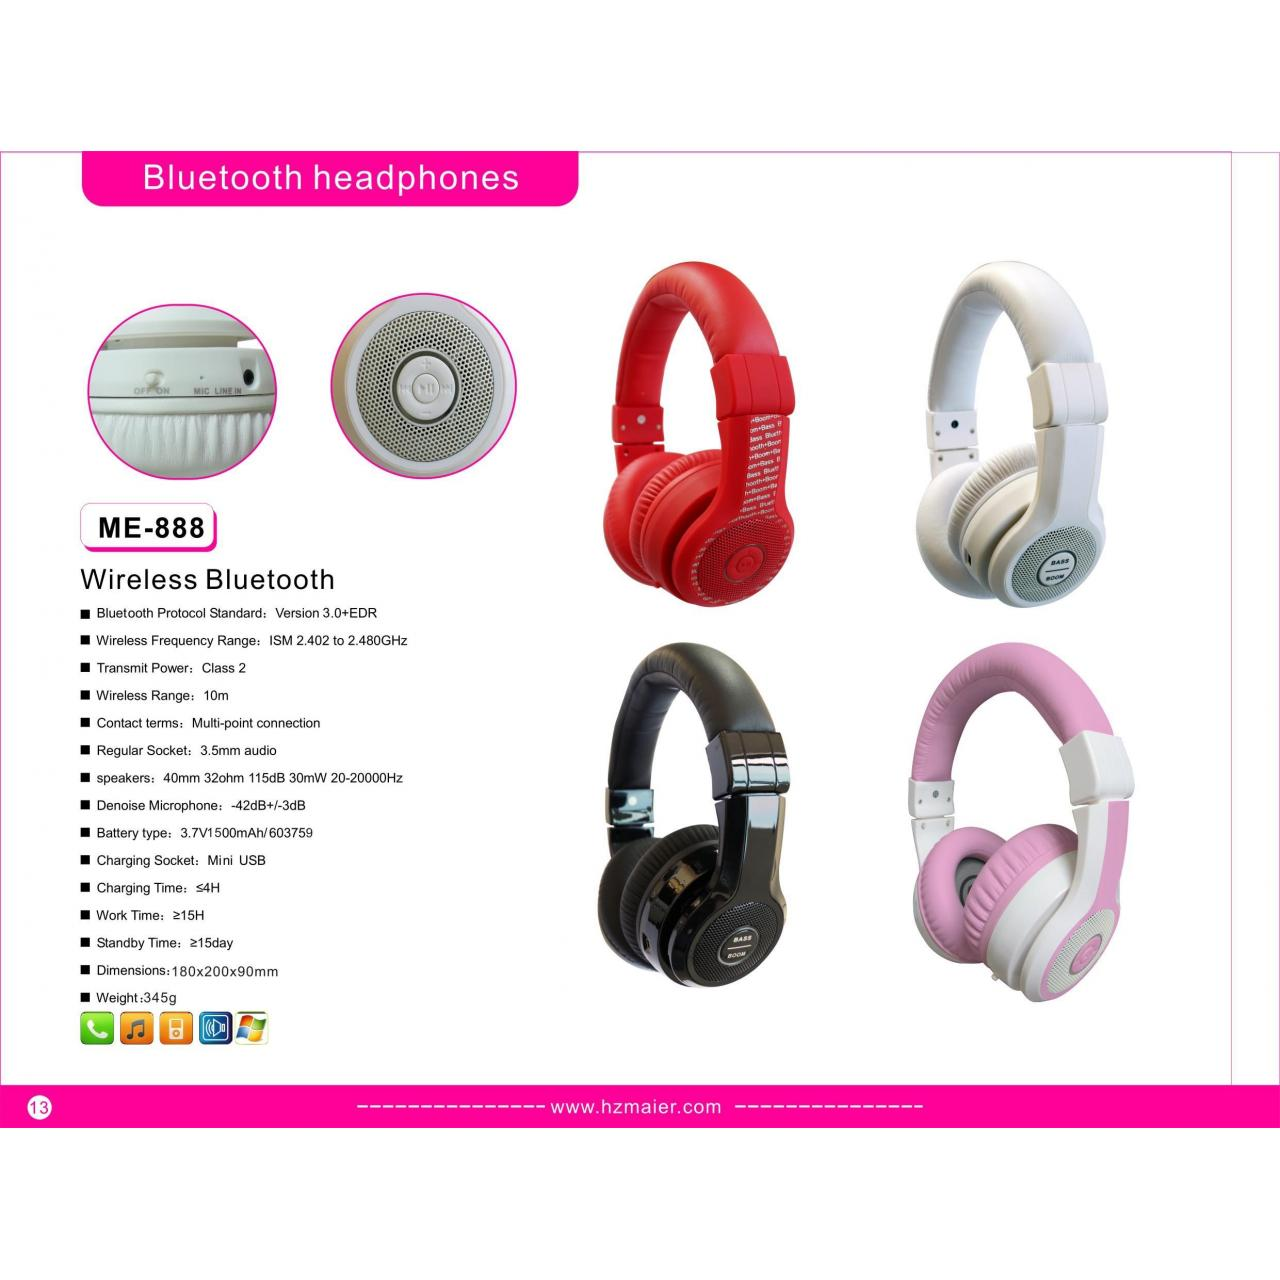 Bluetooth headphones Model:Bluetooth headset